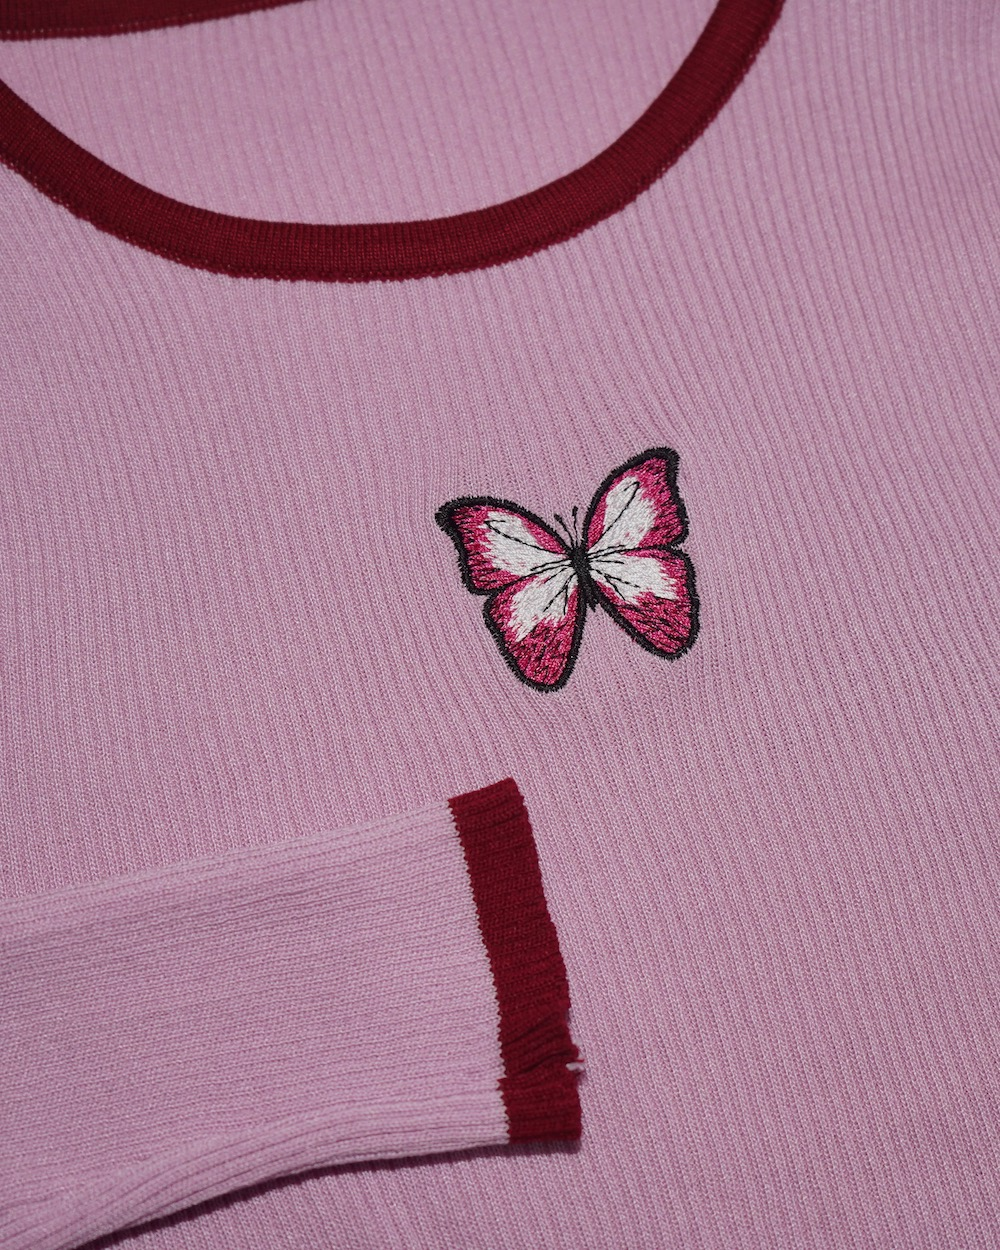 Butterfly Embroidery Rib Knit Tops (pink)